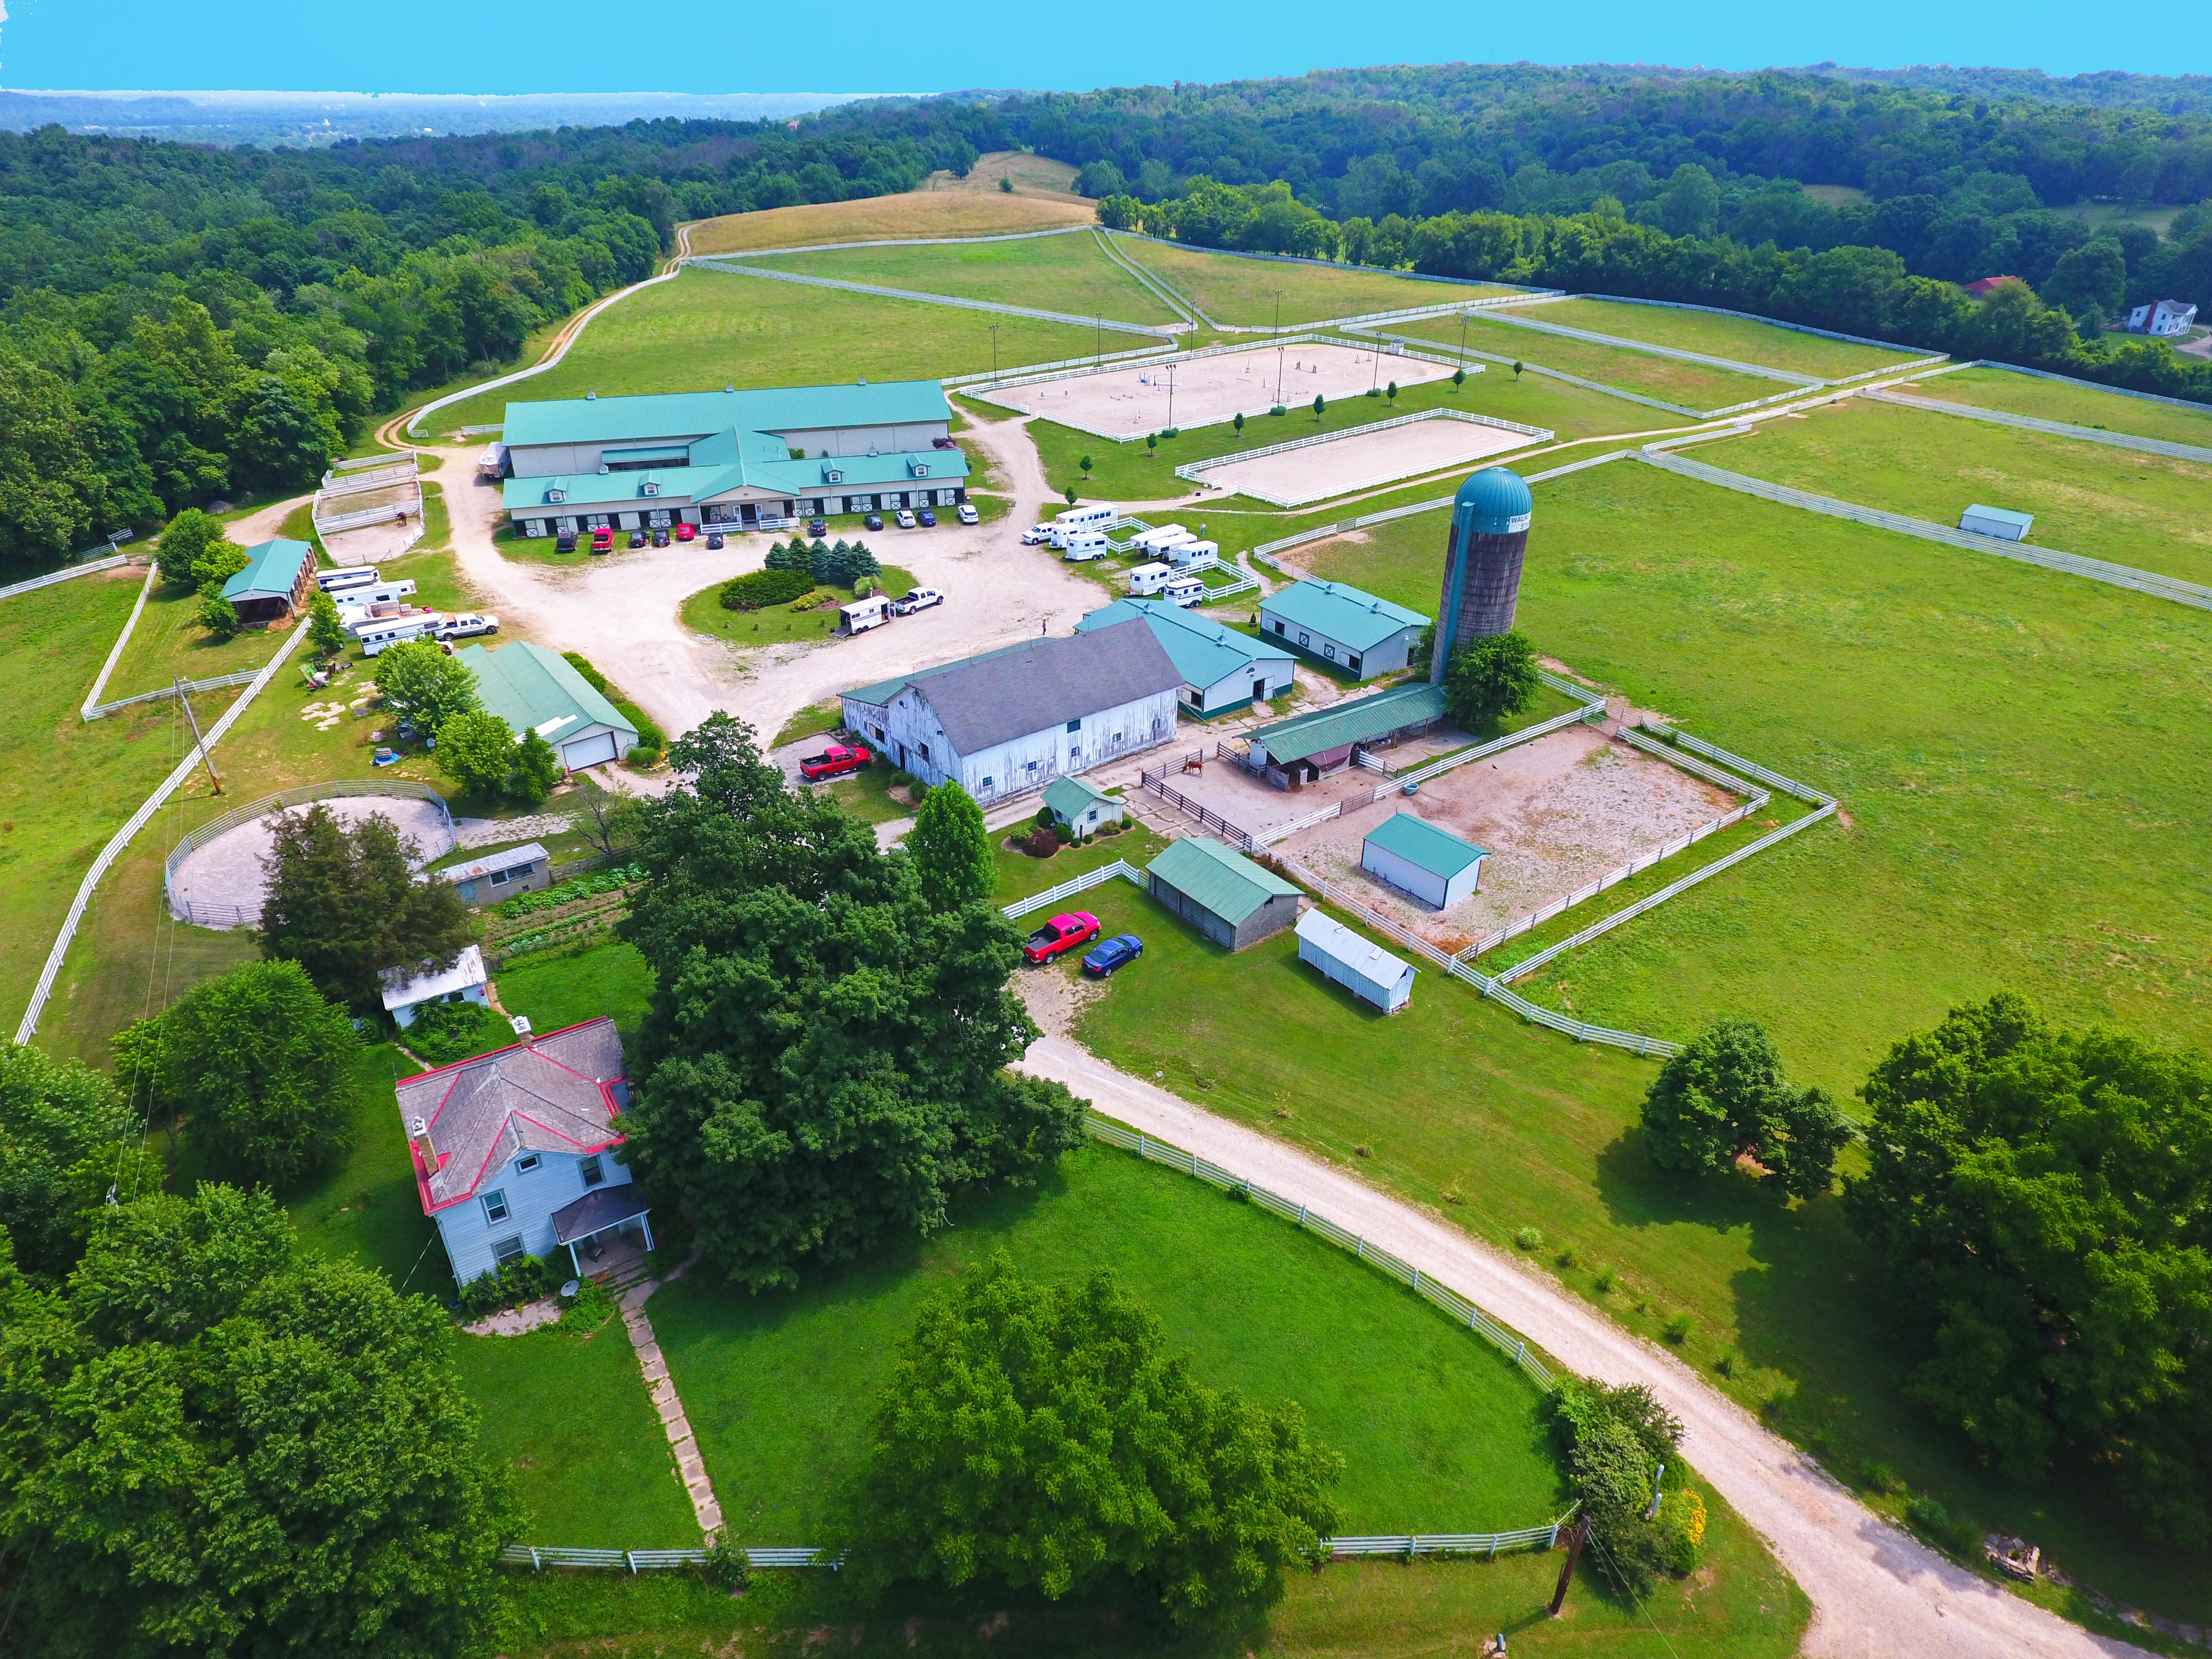 Bird's Eye View of the amenities Photo Credit: A Copter View, copyright 2016